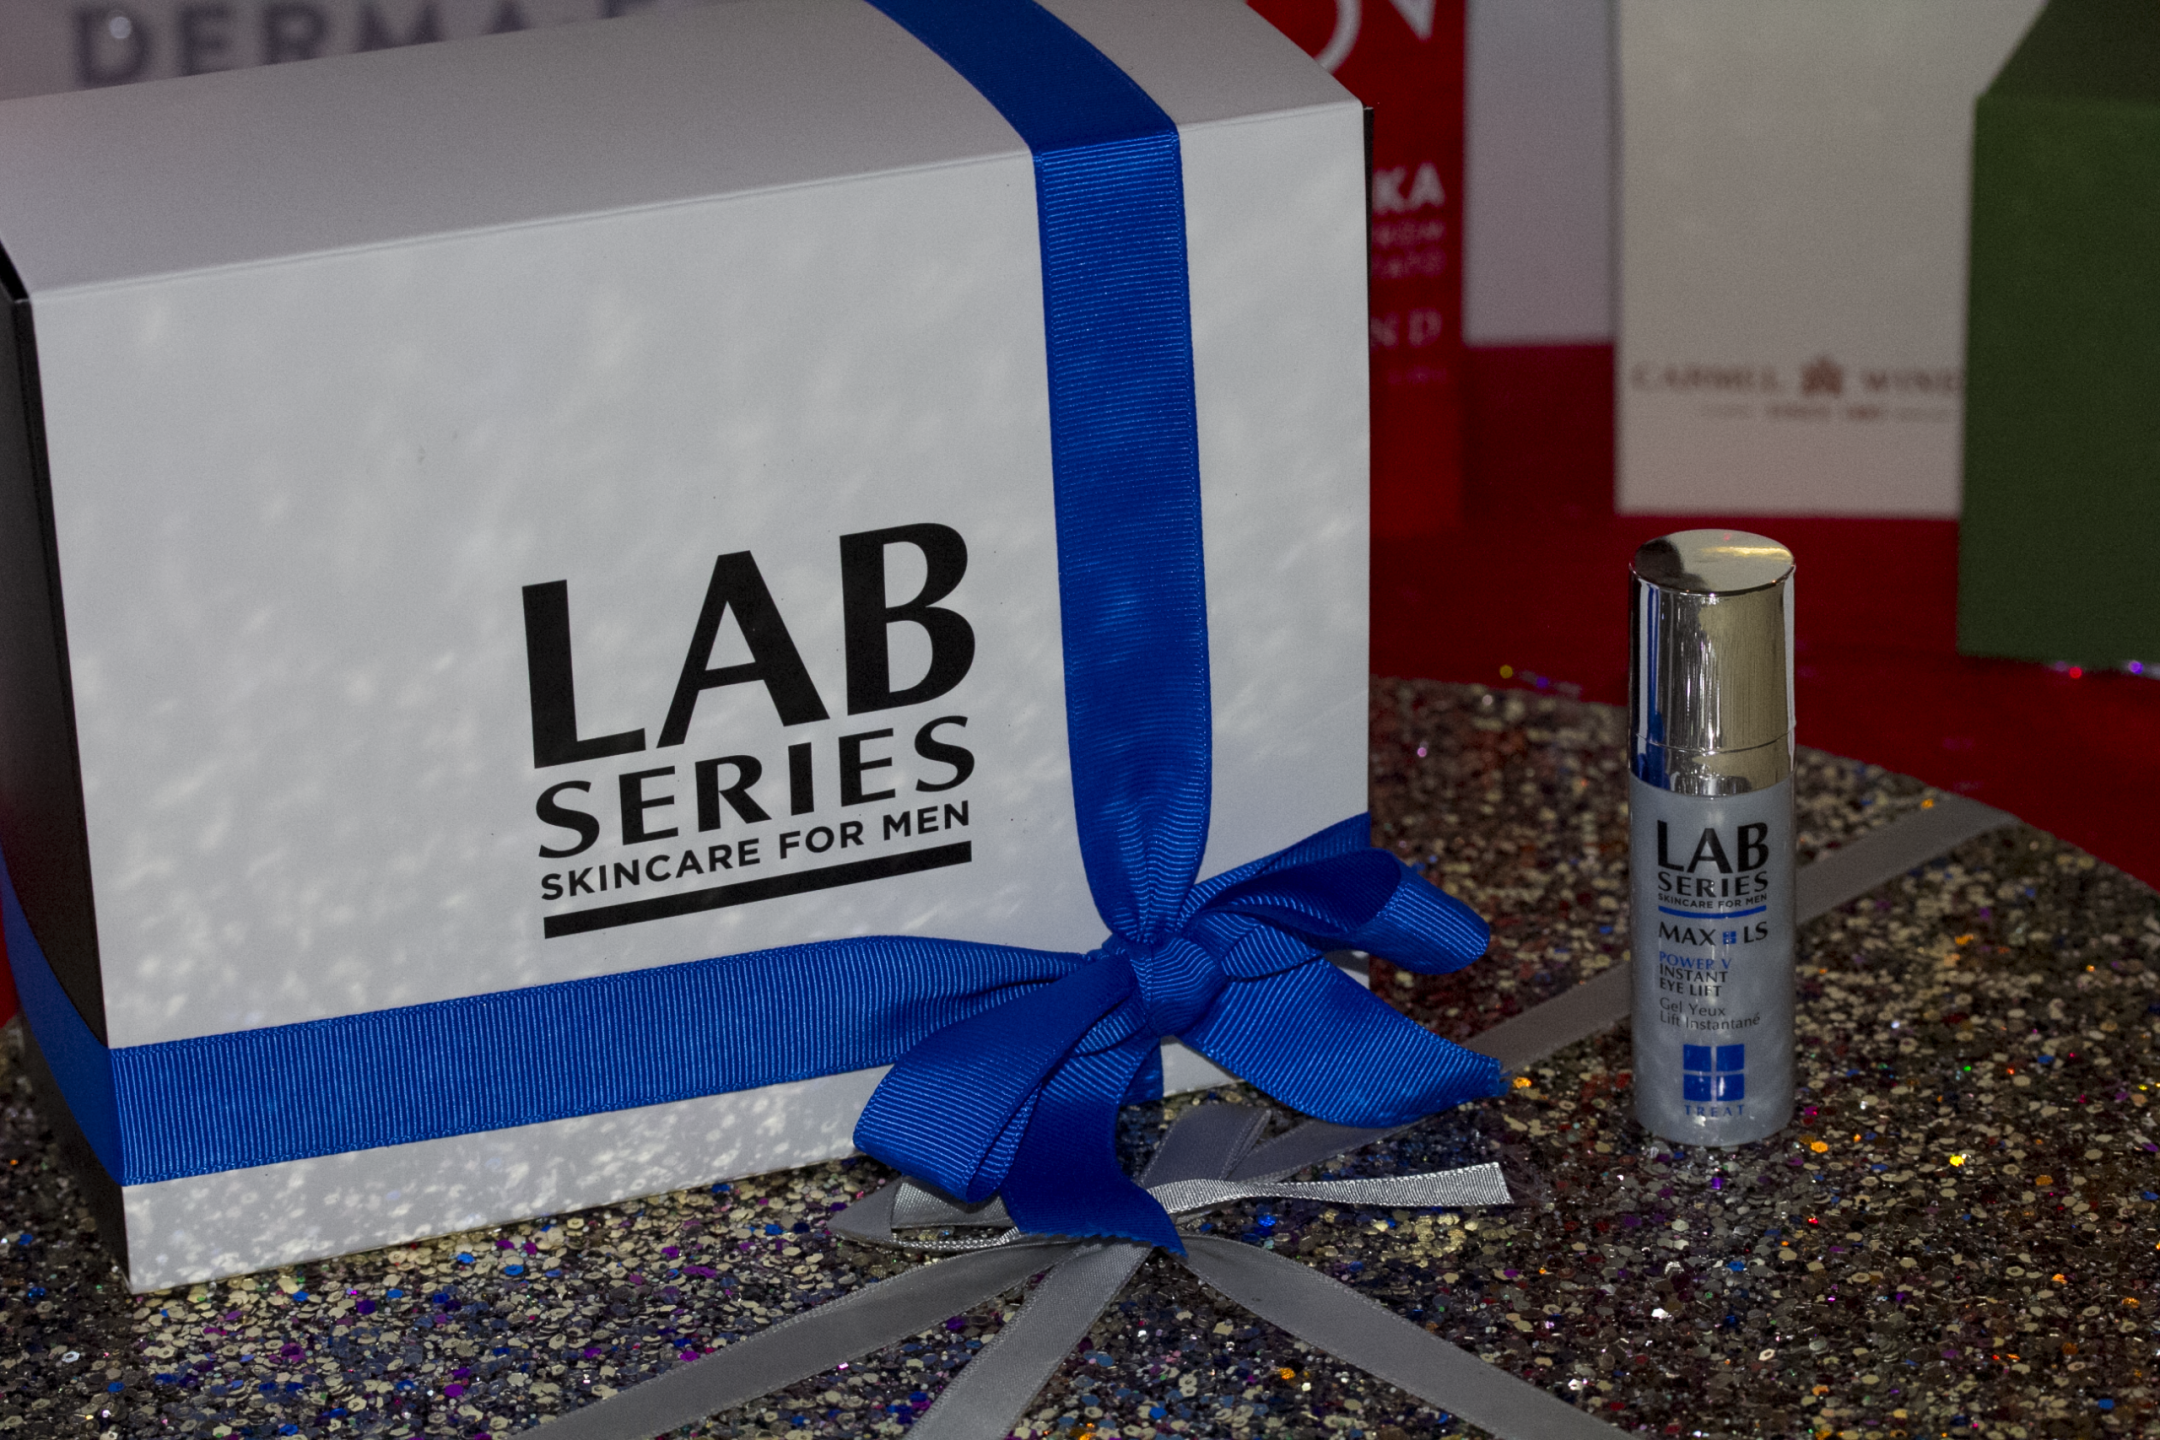 LAB Series skincare for men holiday gift guide